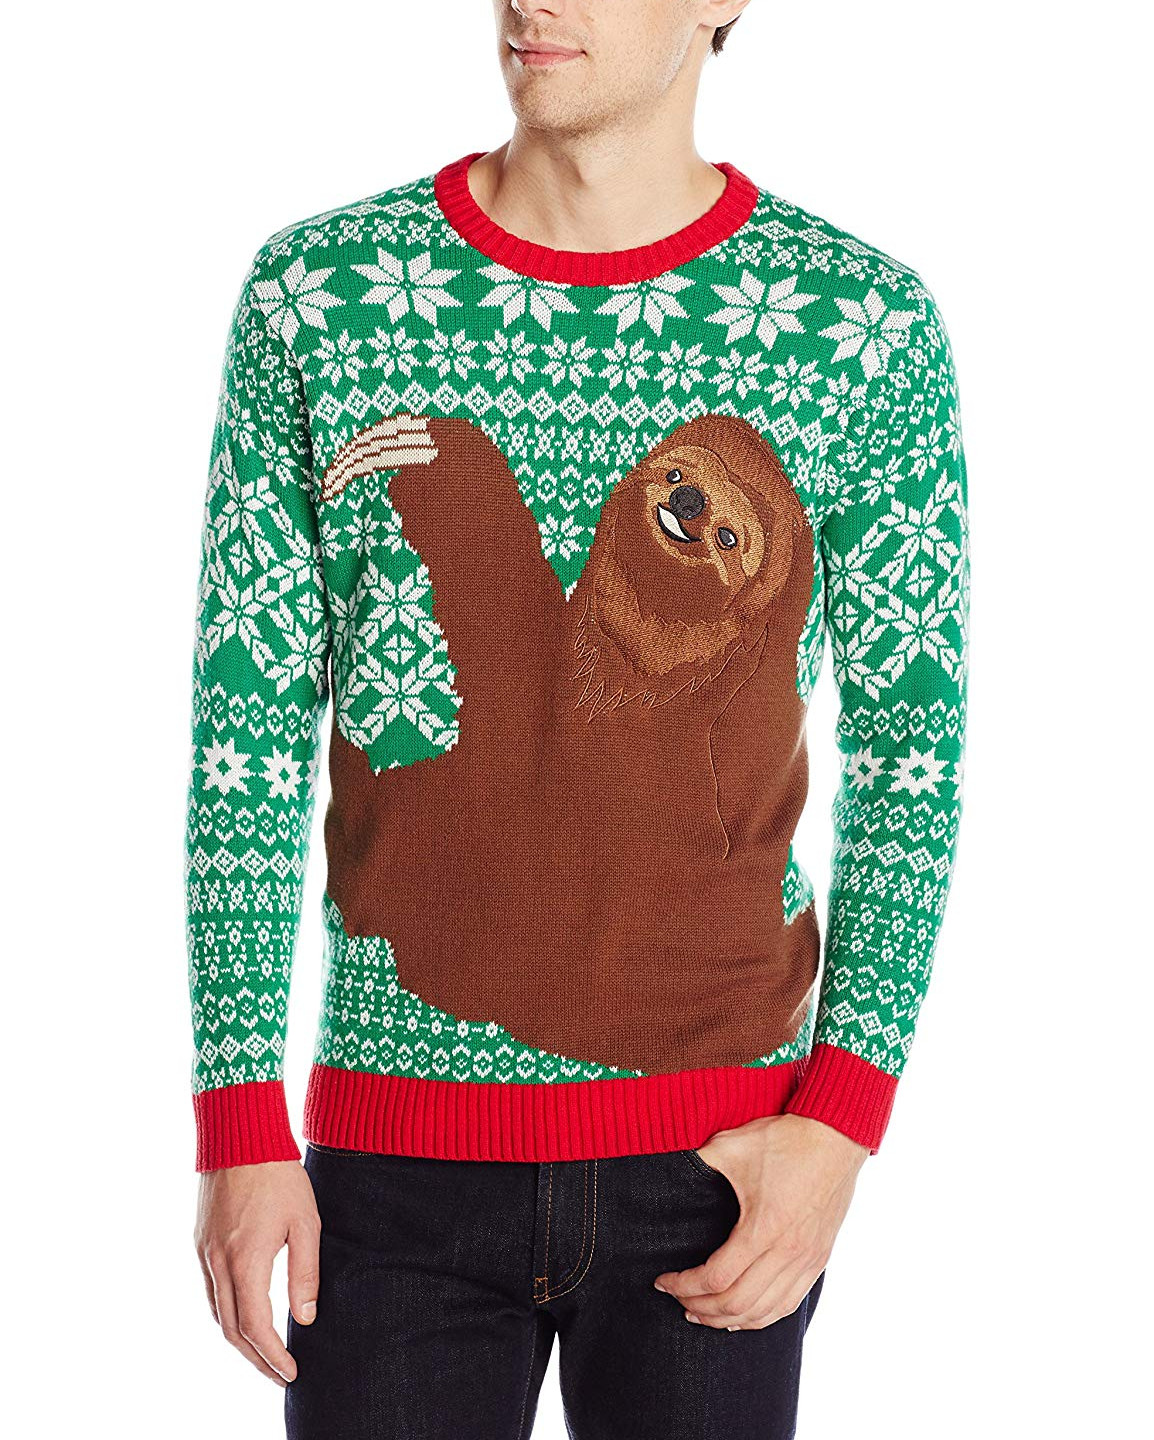 Just missing out on the top spot is this cute Sloth Christmas Jumper. We are calling it now Christmas 2018 the Sloth will dominate! You can't say anything bad about how cute this creatures look. You can get this on for just $39.99 https://www.amazon.com/Blizzard-Bay-Sloth-Christmas-Sweater/dp/B013AW7P52